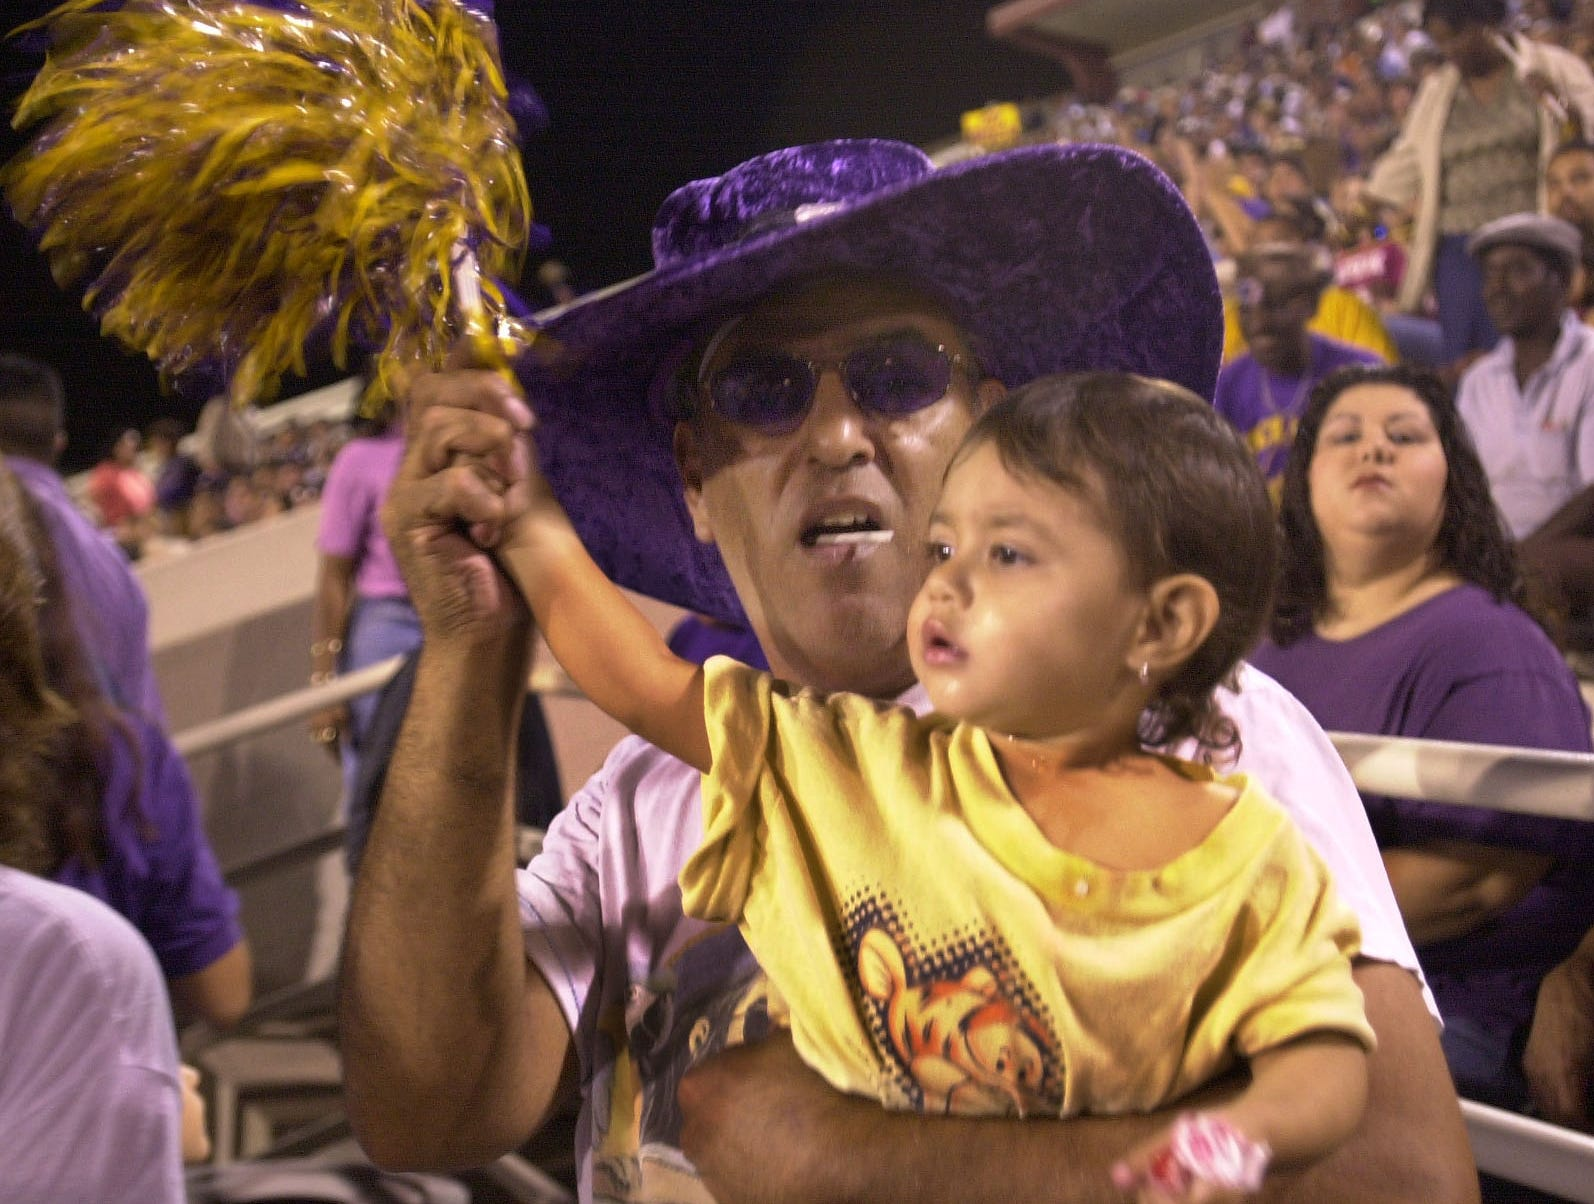 Rey Quijas (left) in a purple velvet hat helps his 20-month old daughter Bellanisa Quijas wave a purple and gold pom-pom on the Miller side of Buc Stadium on Nov. 8, 2001.